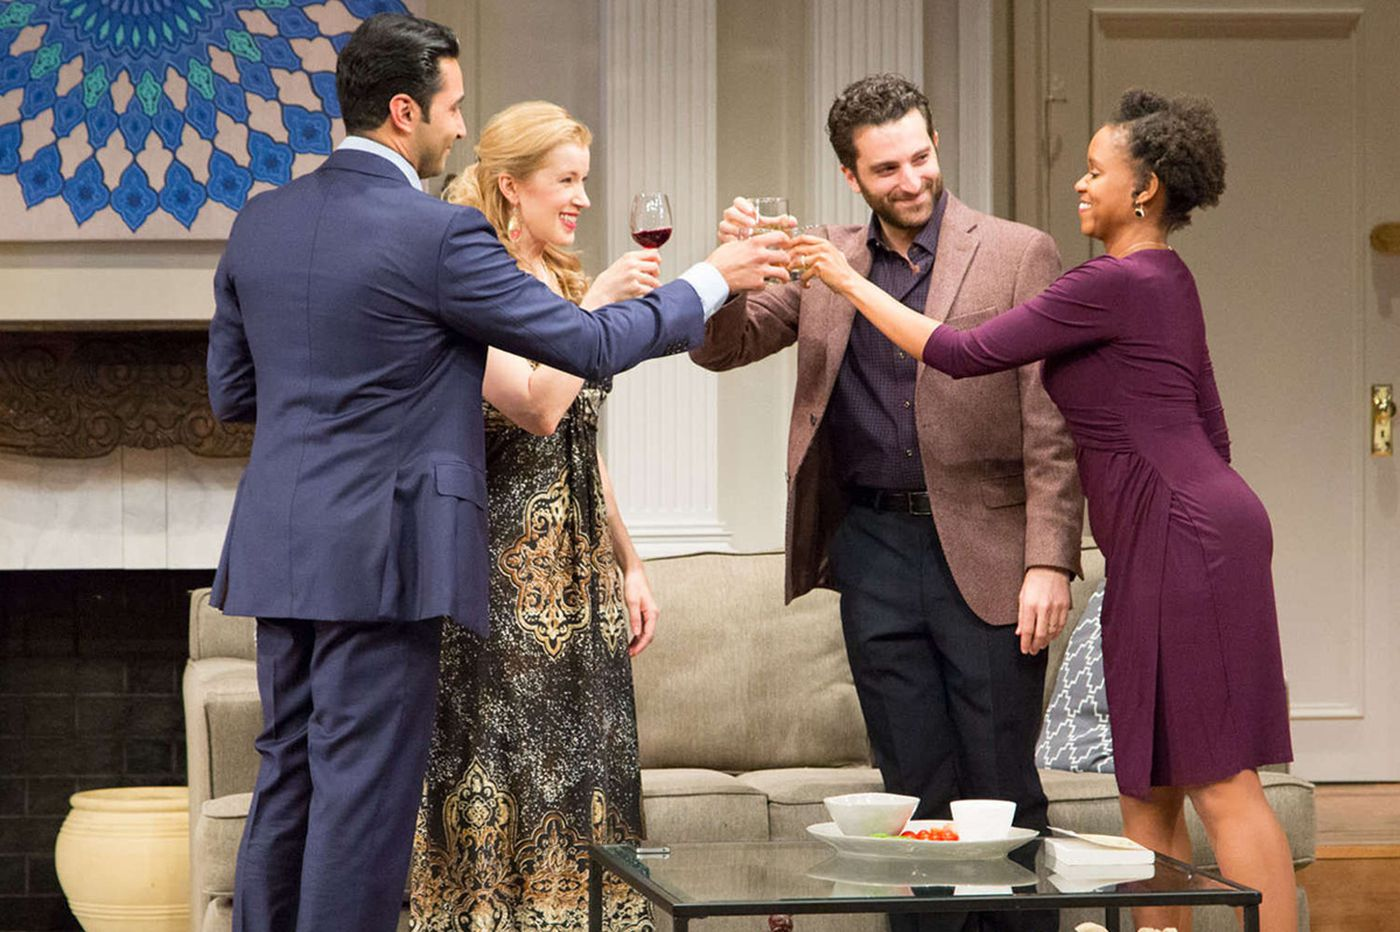 'Disgraced' talks a good game, but ultimately falls short